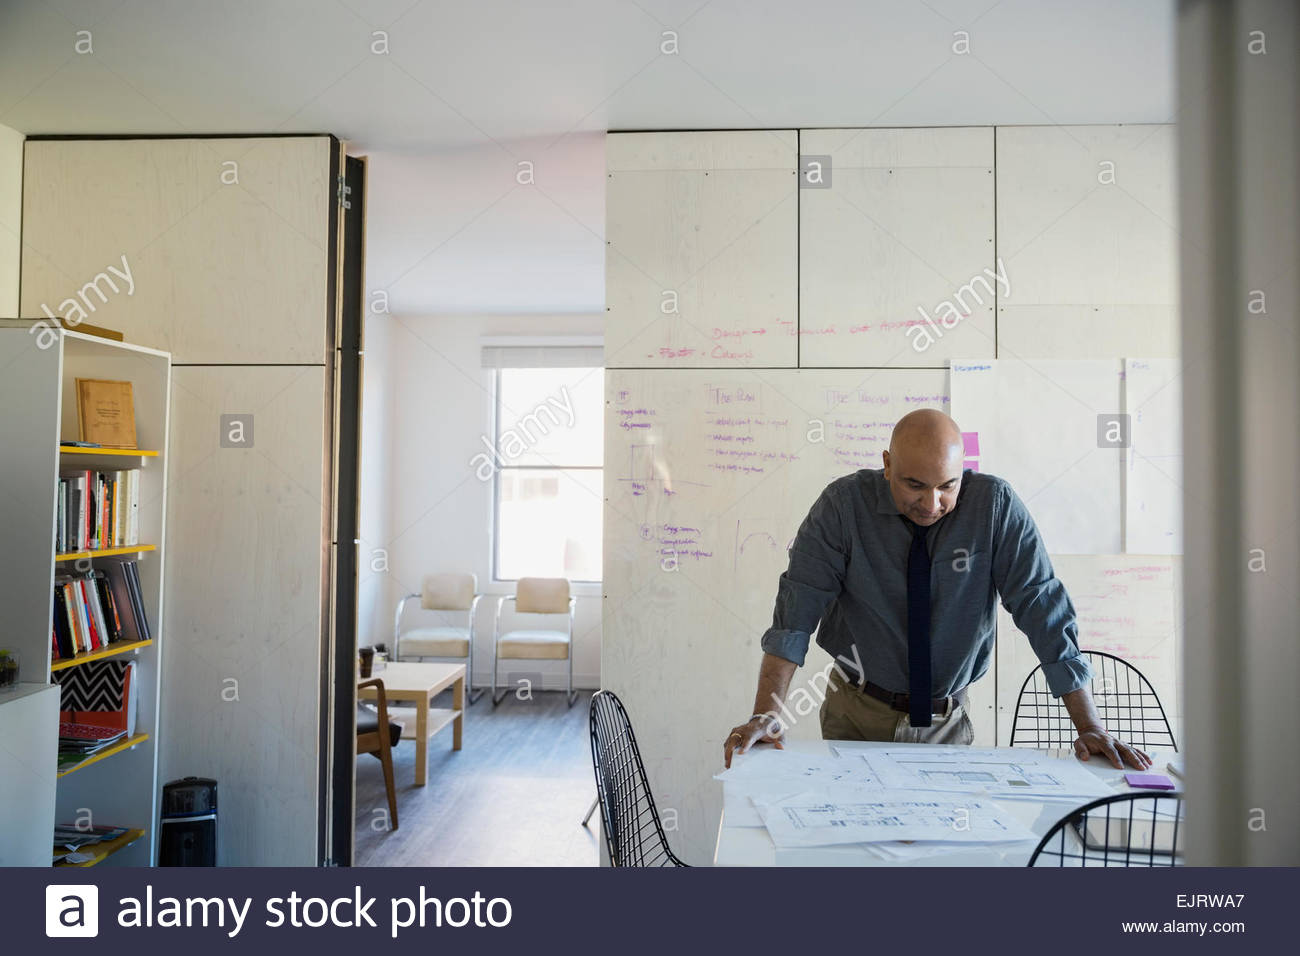 Architect reviewing blueprints in conference room - Stock Image